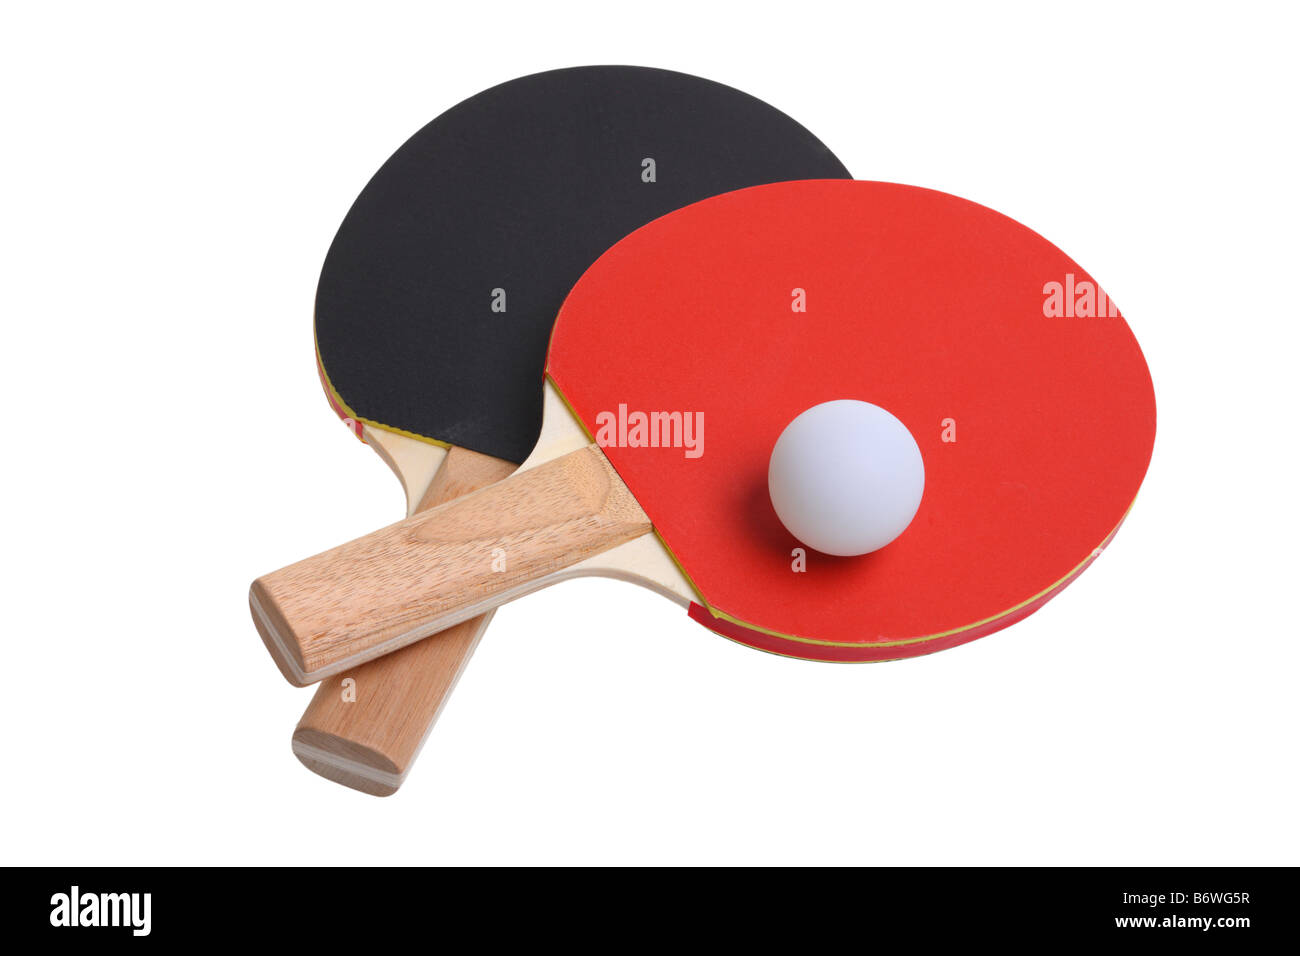 Ping Pong paddles and ball cut out isolated on white background - Stock Image